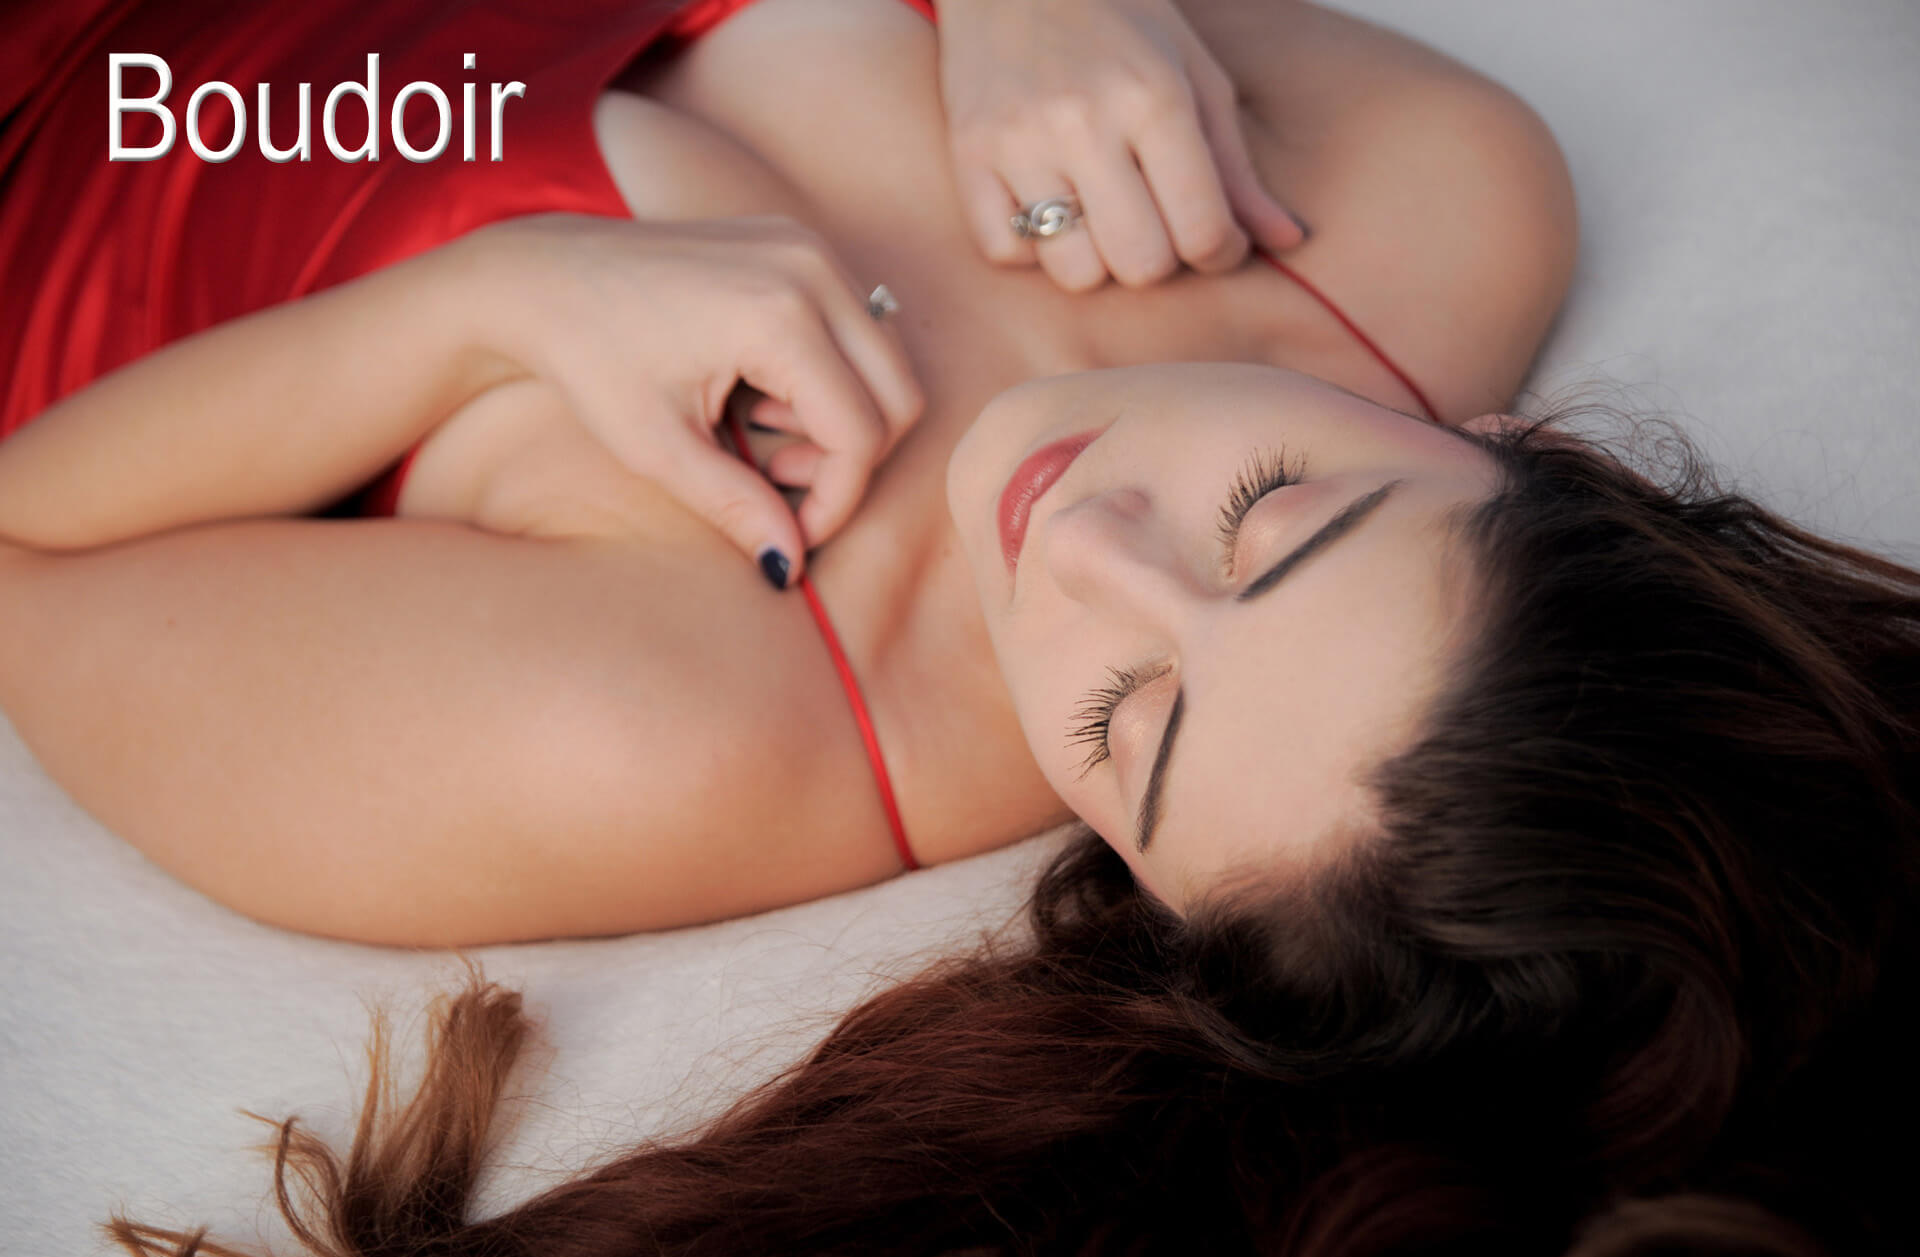 Boudoir style photographer is an experienced female photographer in the metro Detroit, Michigan area. Boudoir photography is either taken in your home or at a local hotel like this sample of boudoir photography.